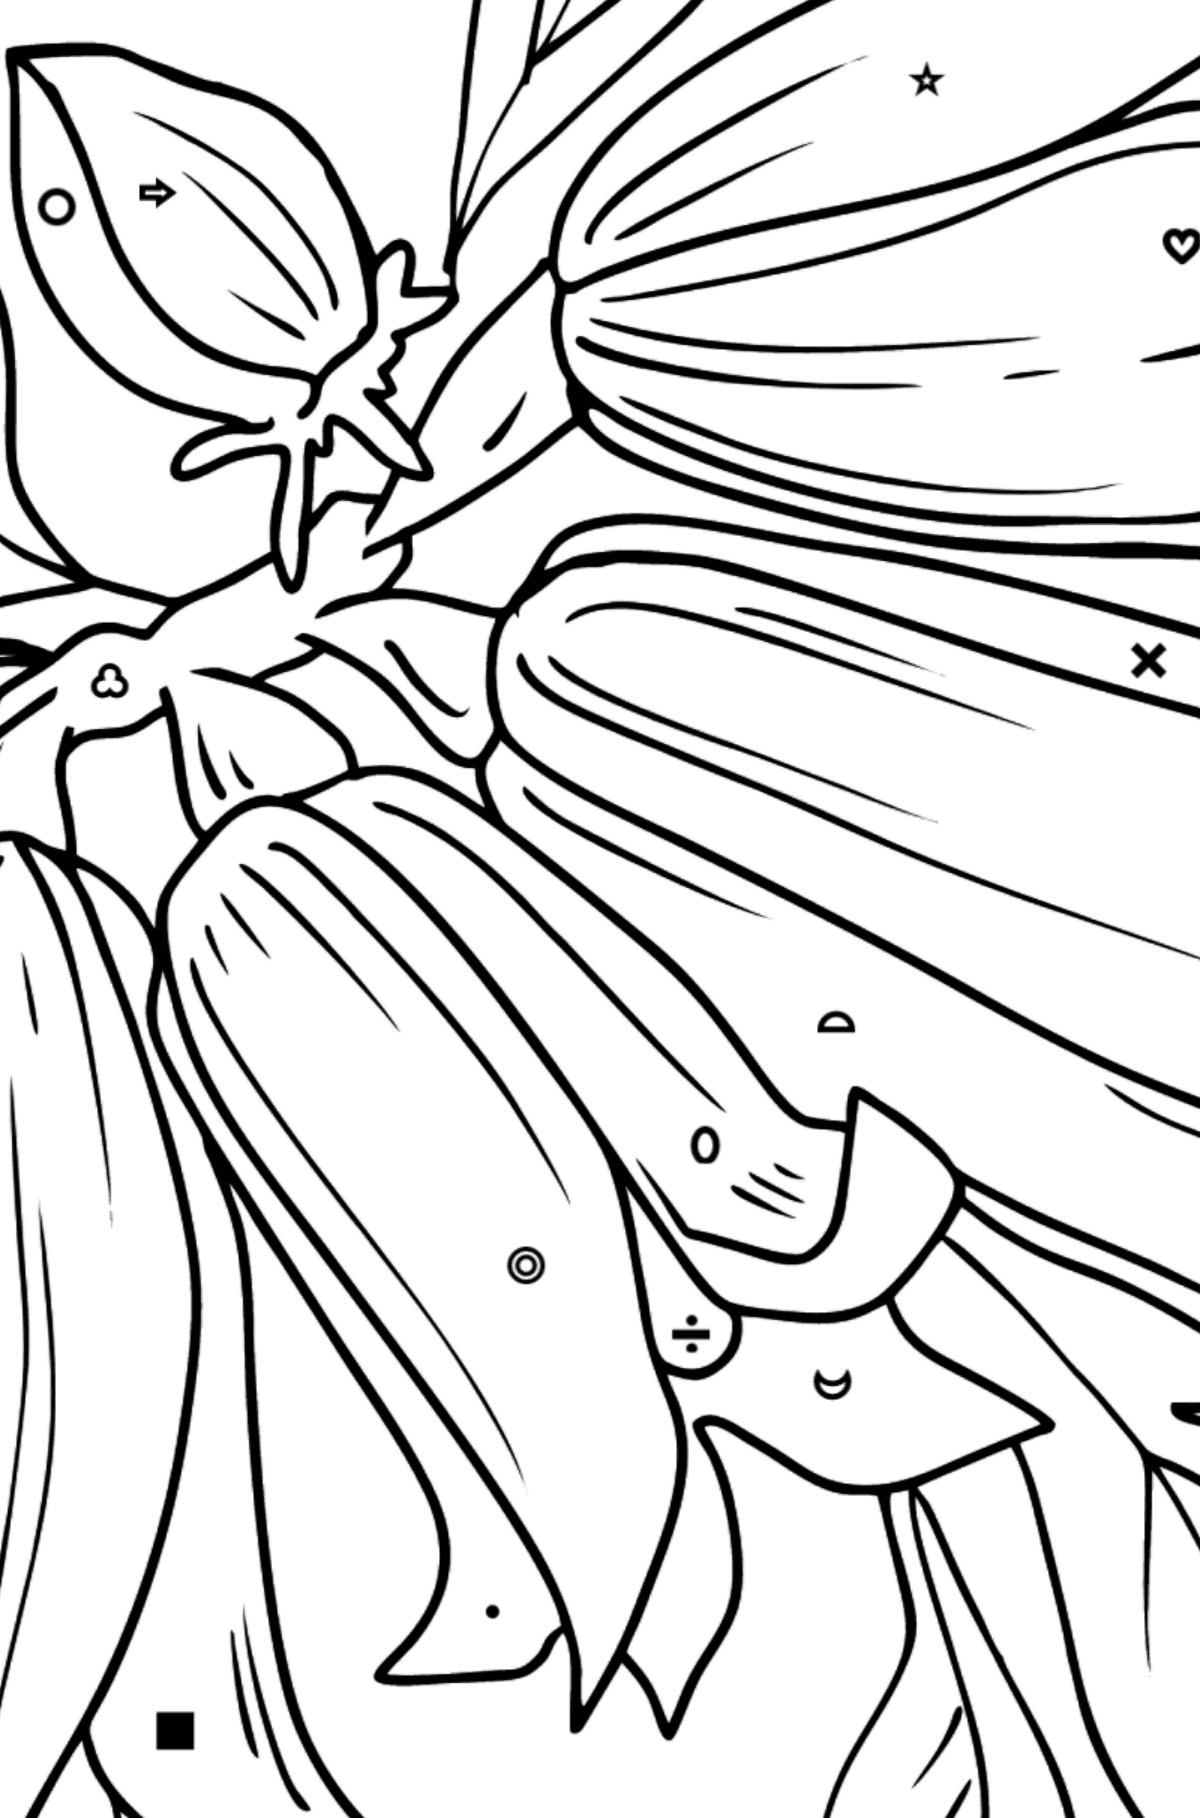 Flower Coloring Page - Bells - Coloring by Symbols and Geometric Shapes for Kids